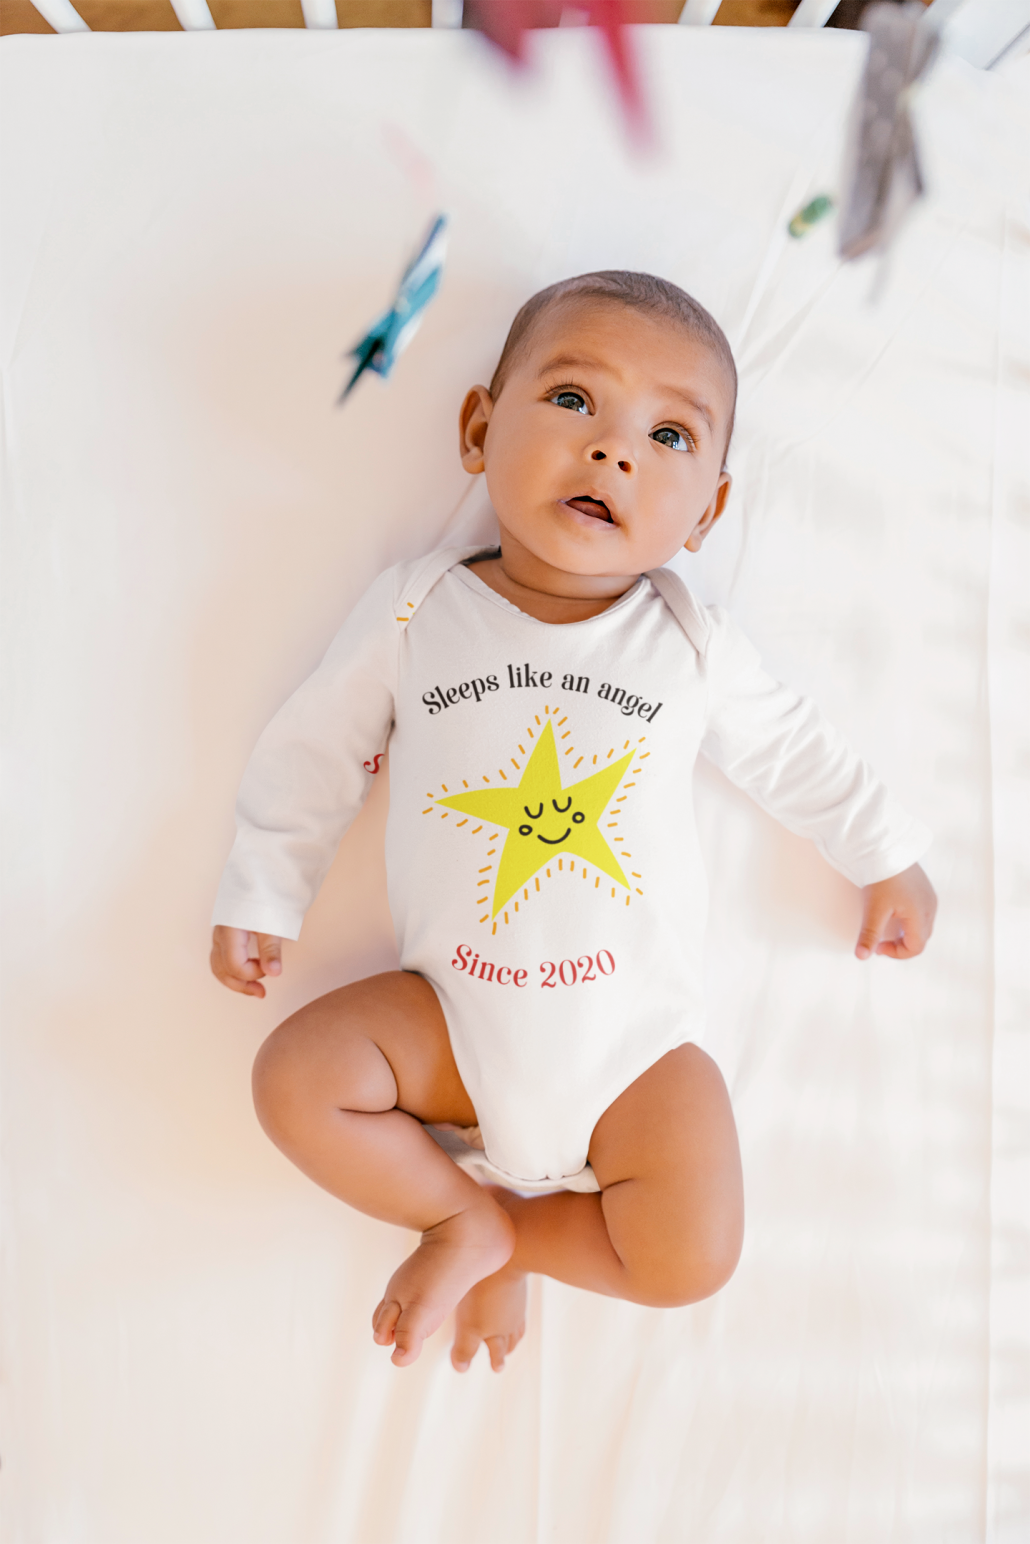 Baby with custom romper suit